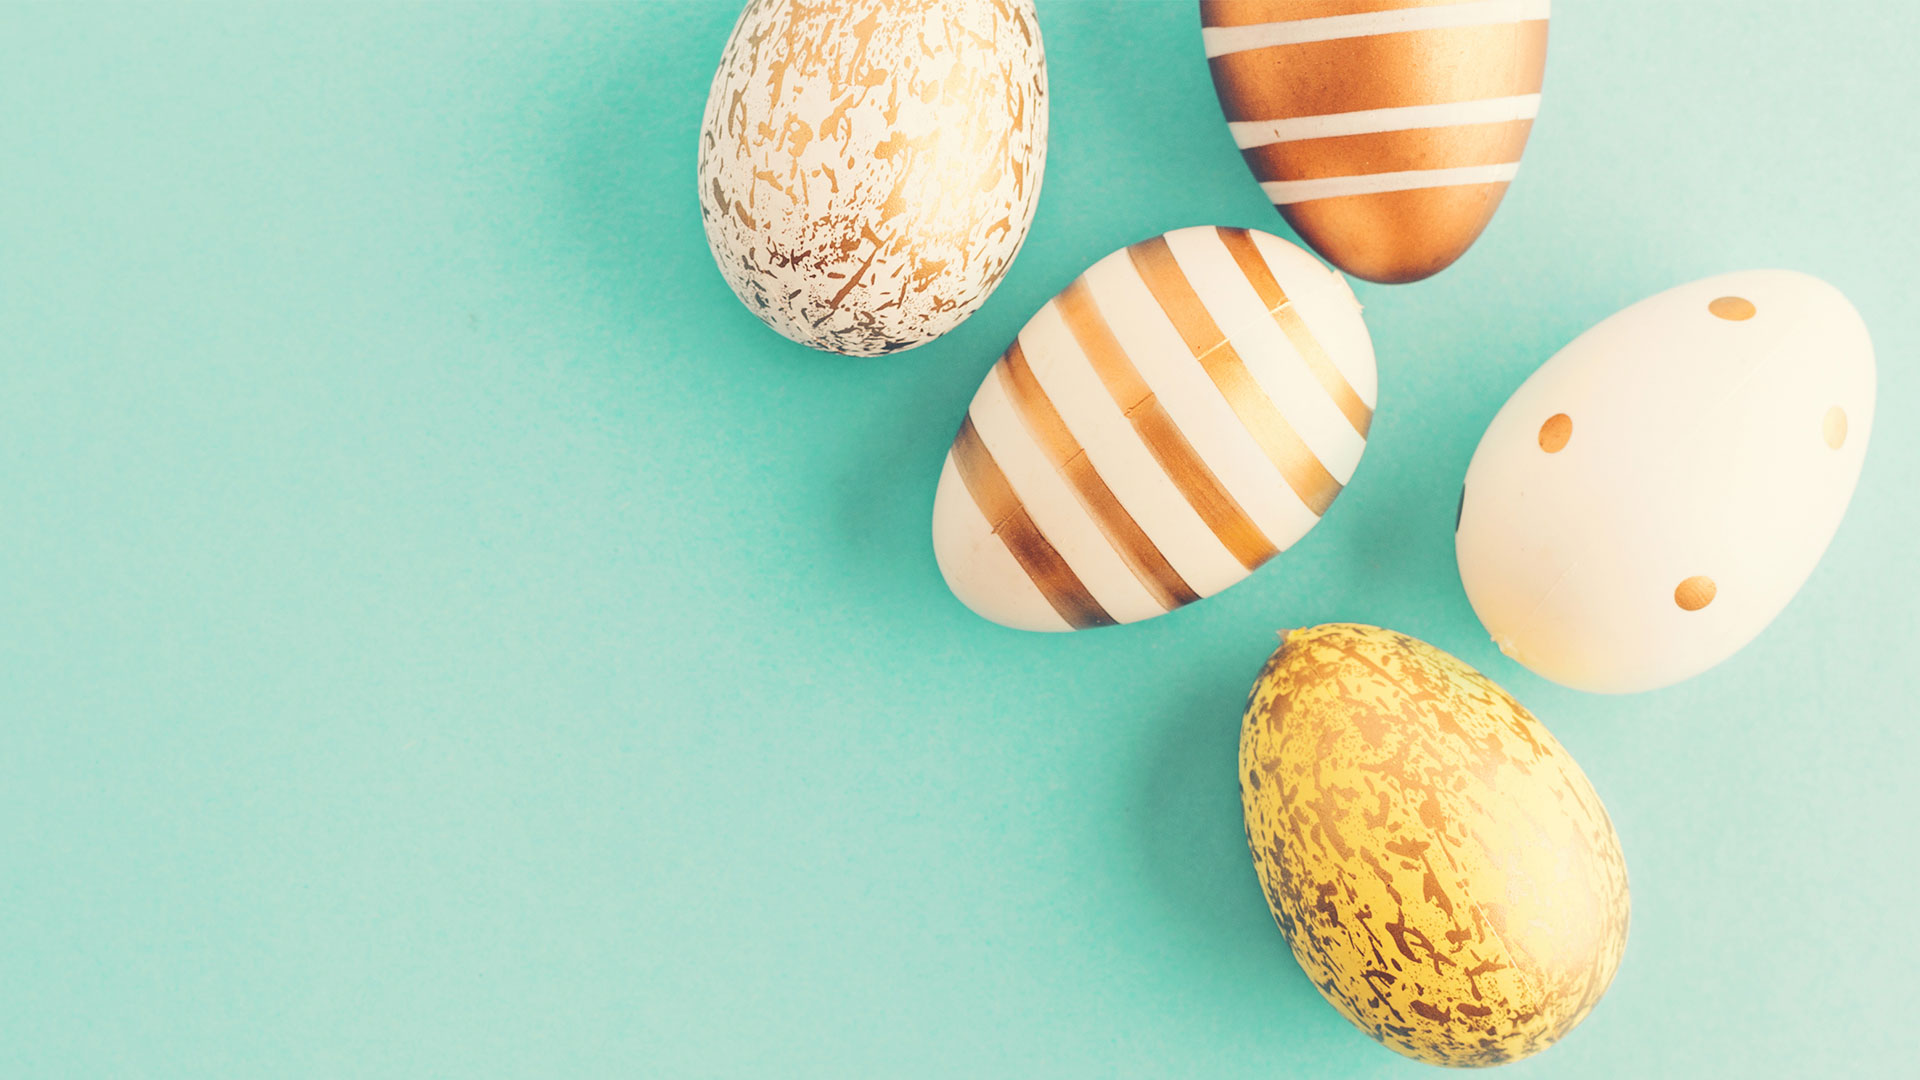 8 Valuable Tips For Churches Heading Into Easter